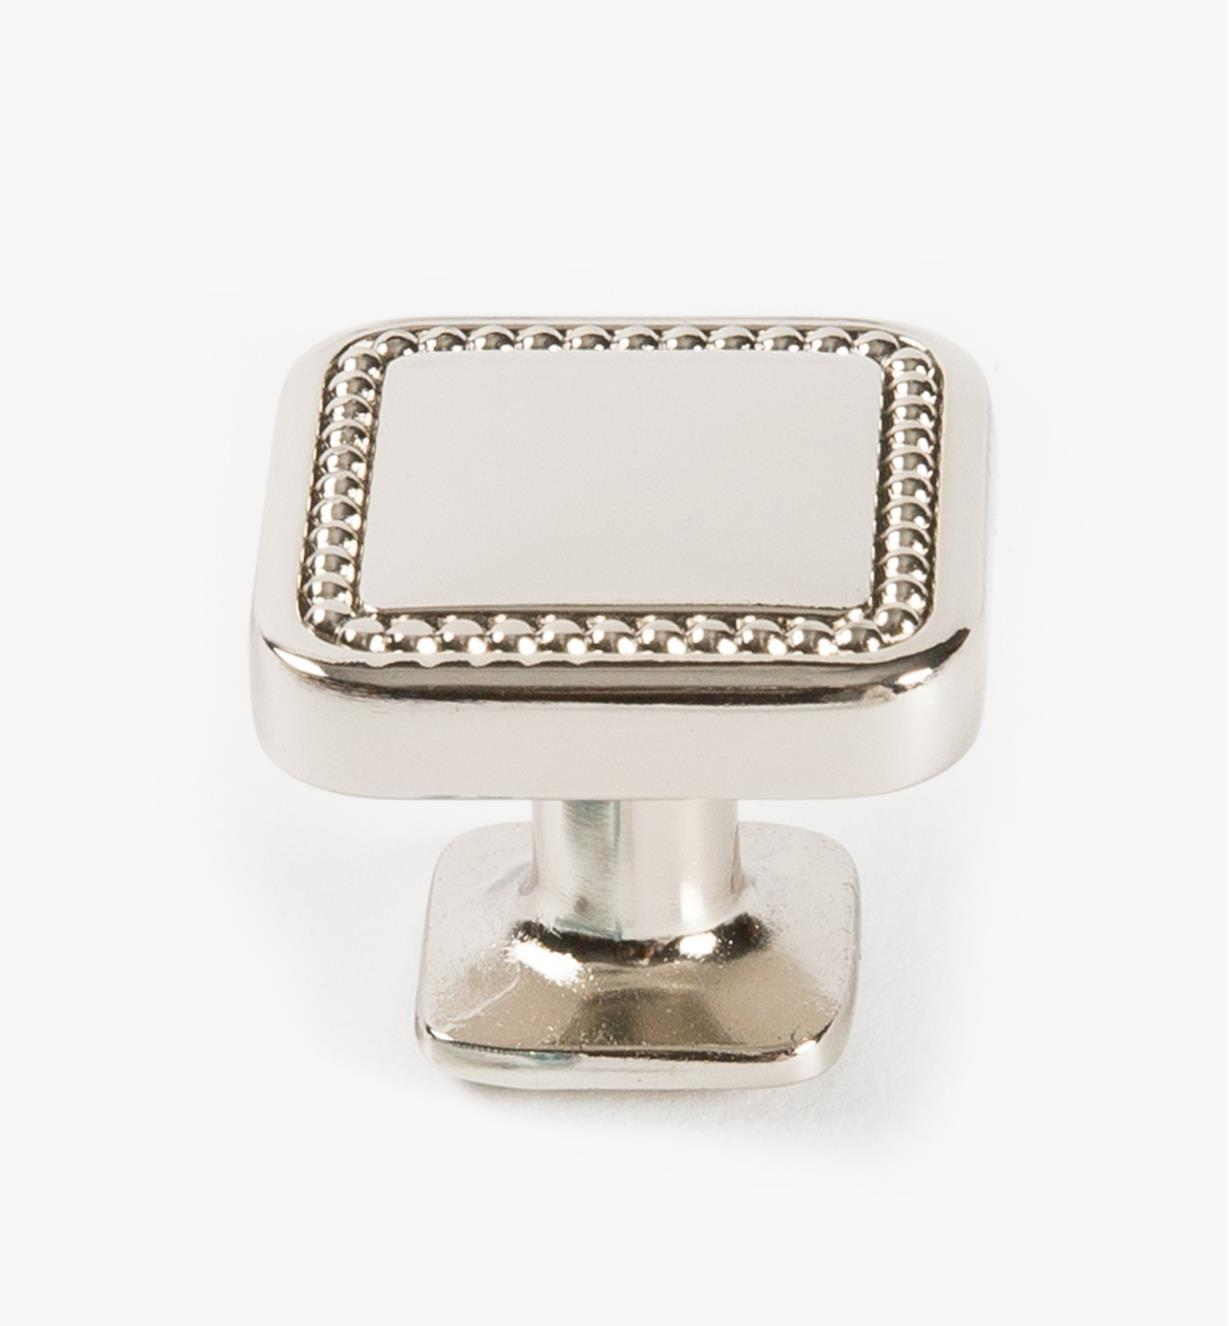 "02A1635 - Carolyne Polished Nickel 32mm (1 1/4"") Square Knob, each"